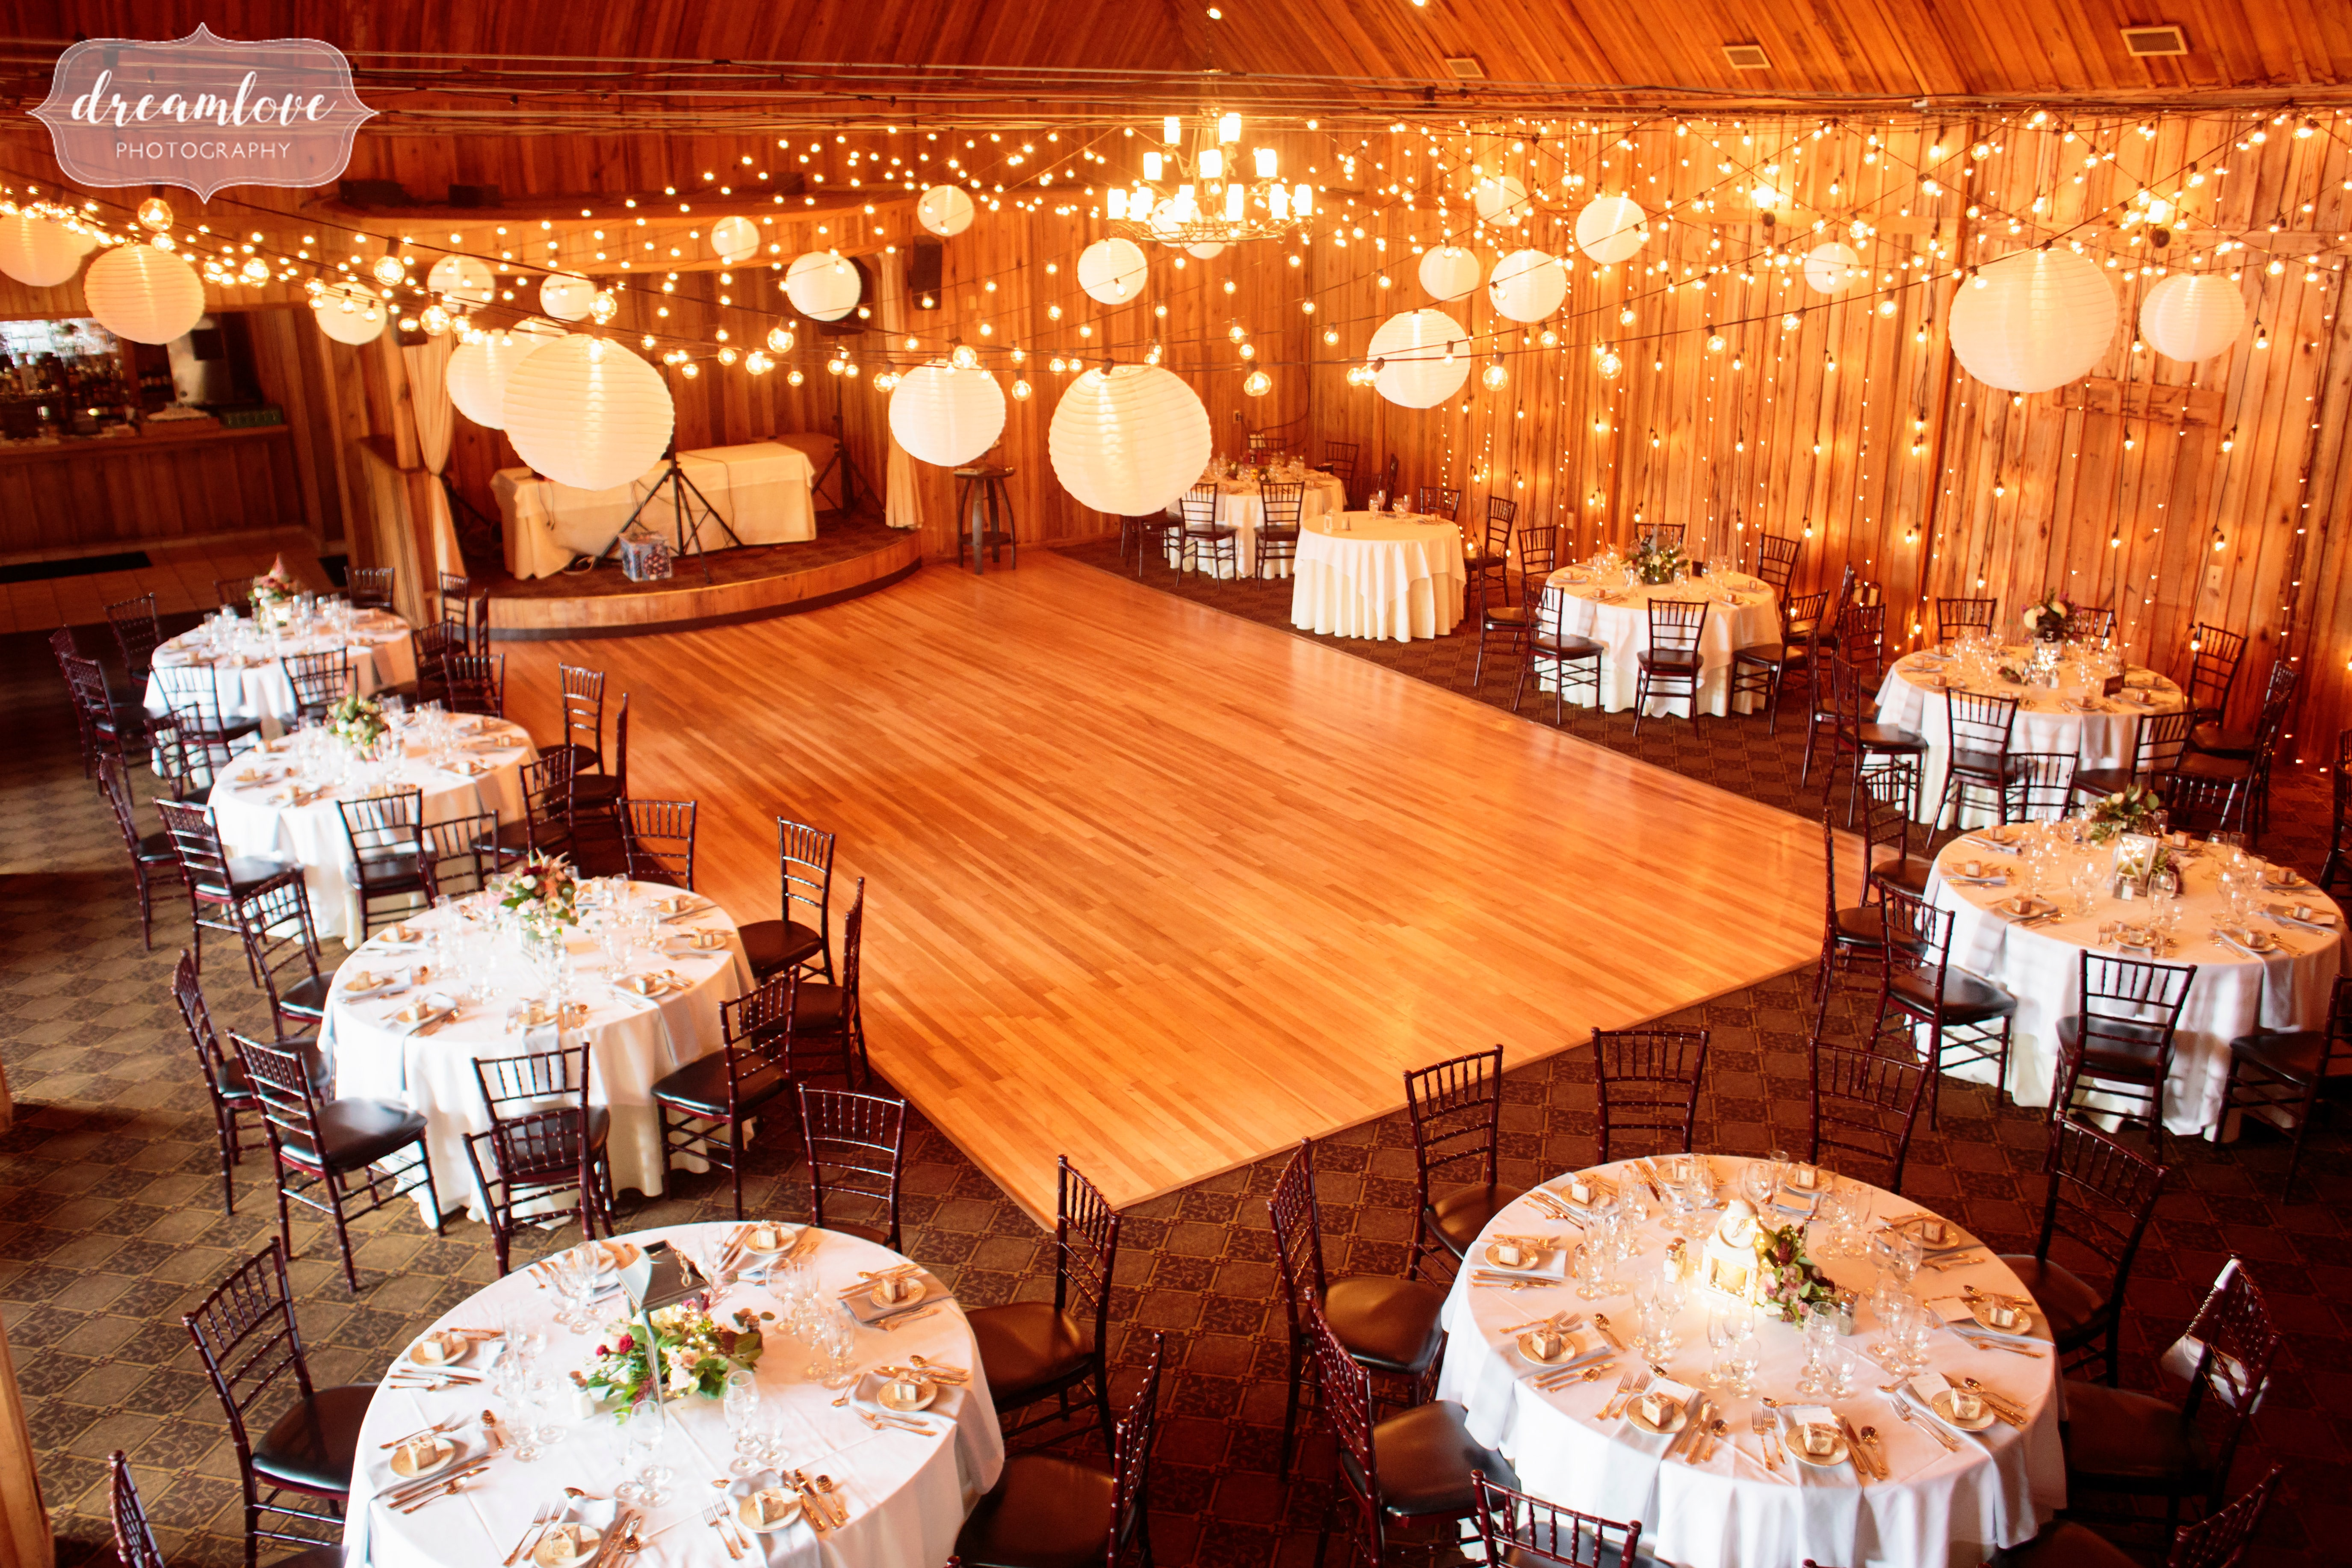 An inside view of the Pavilion on Crystal Lake with dance floor and round dinner tables set up.